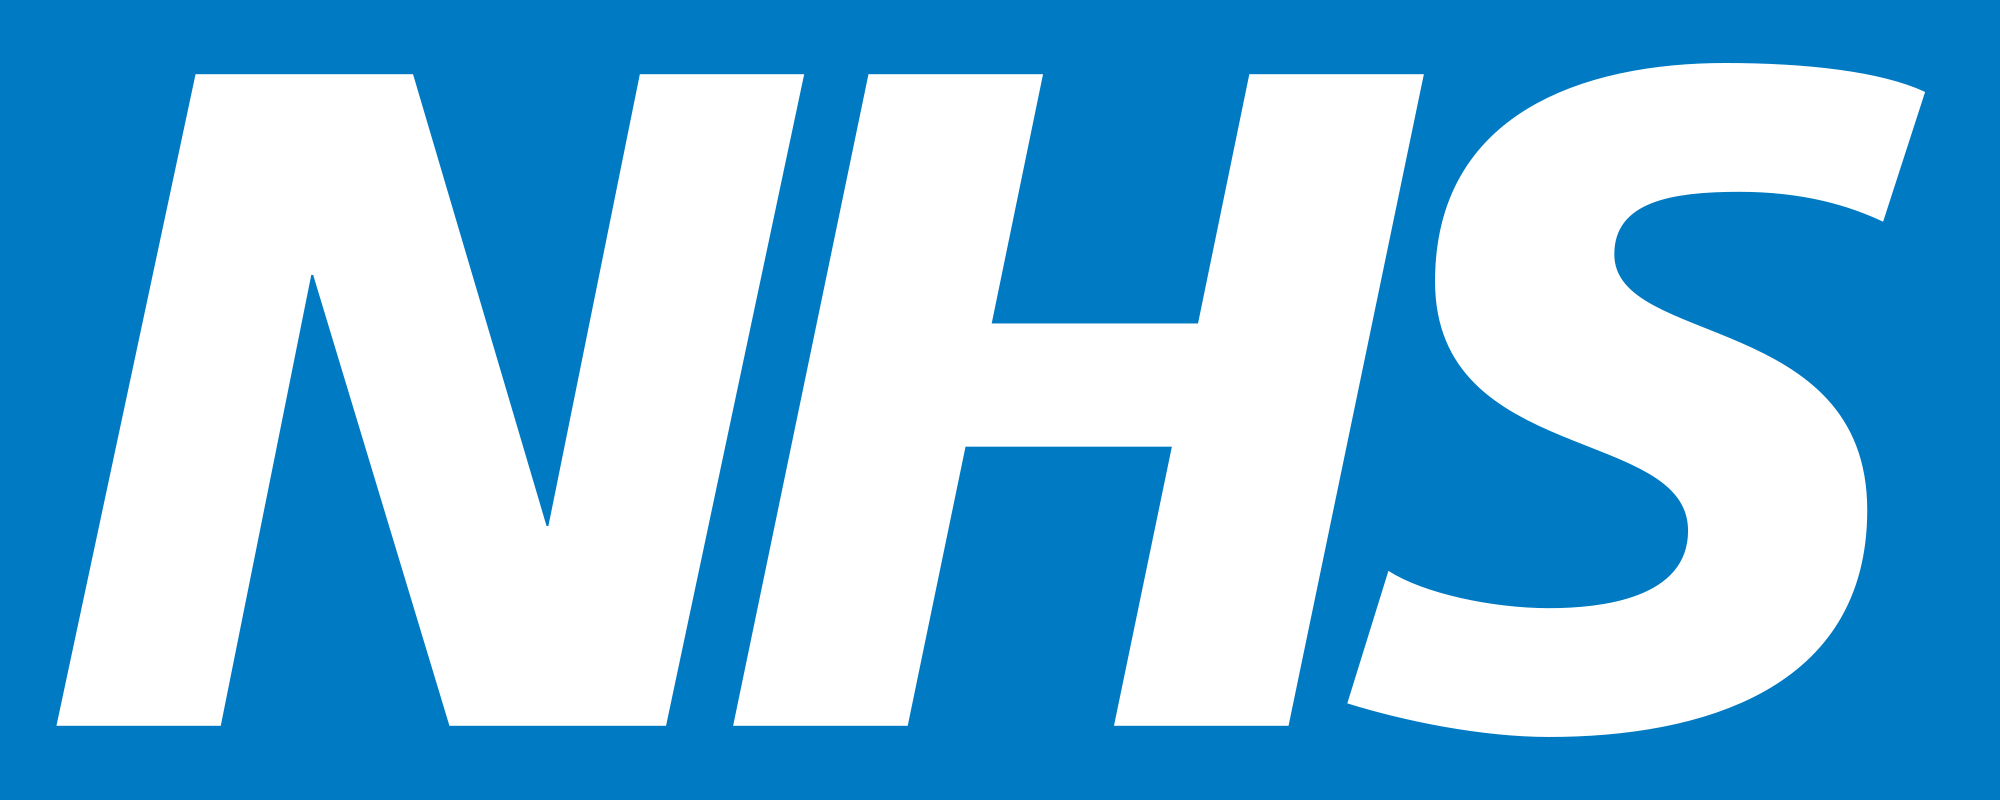 Equality News Update: Fife mental health patients 'let down' by NHS pressures